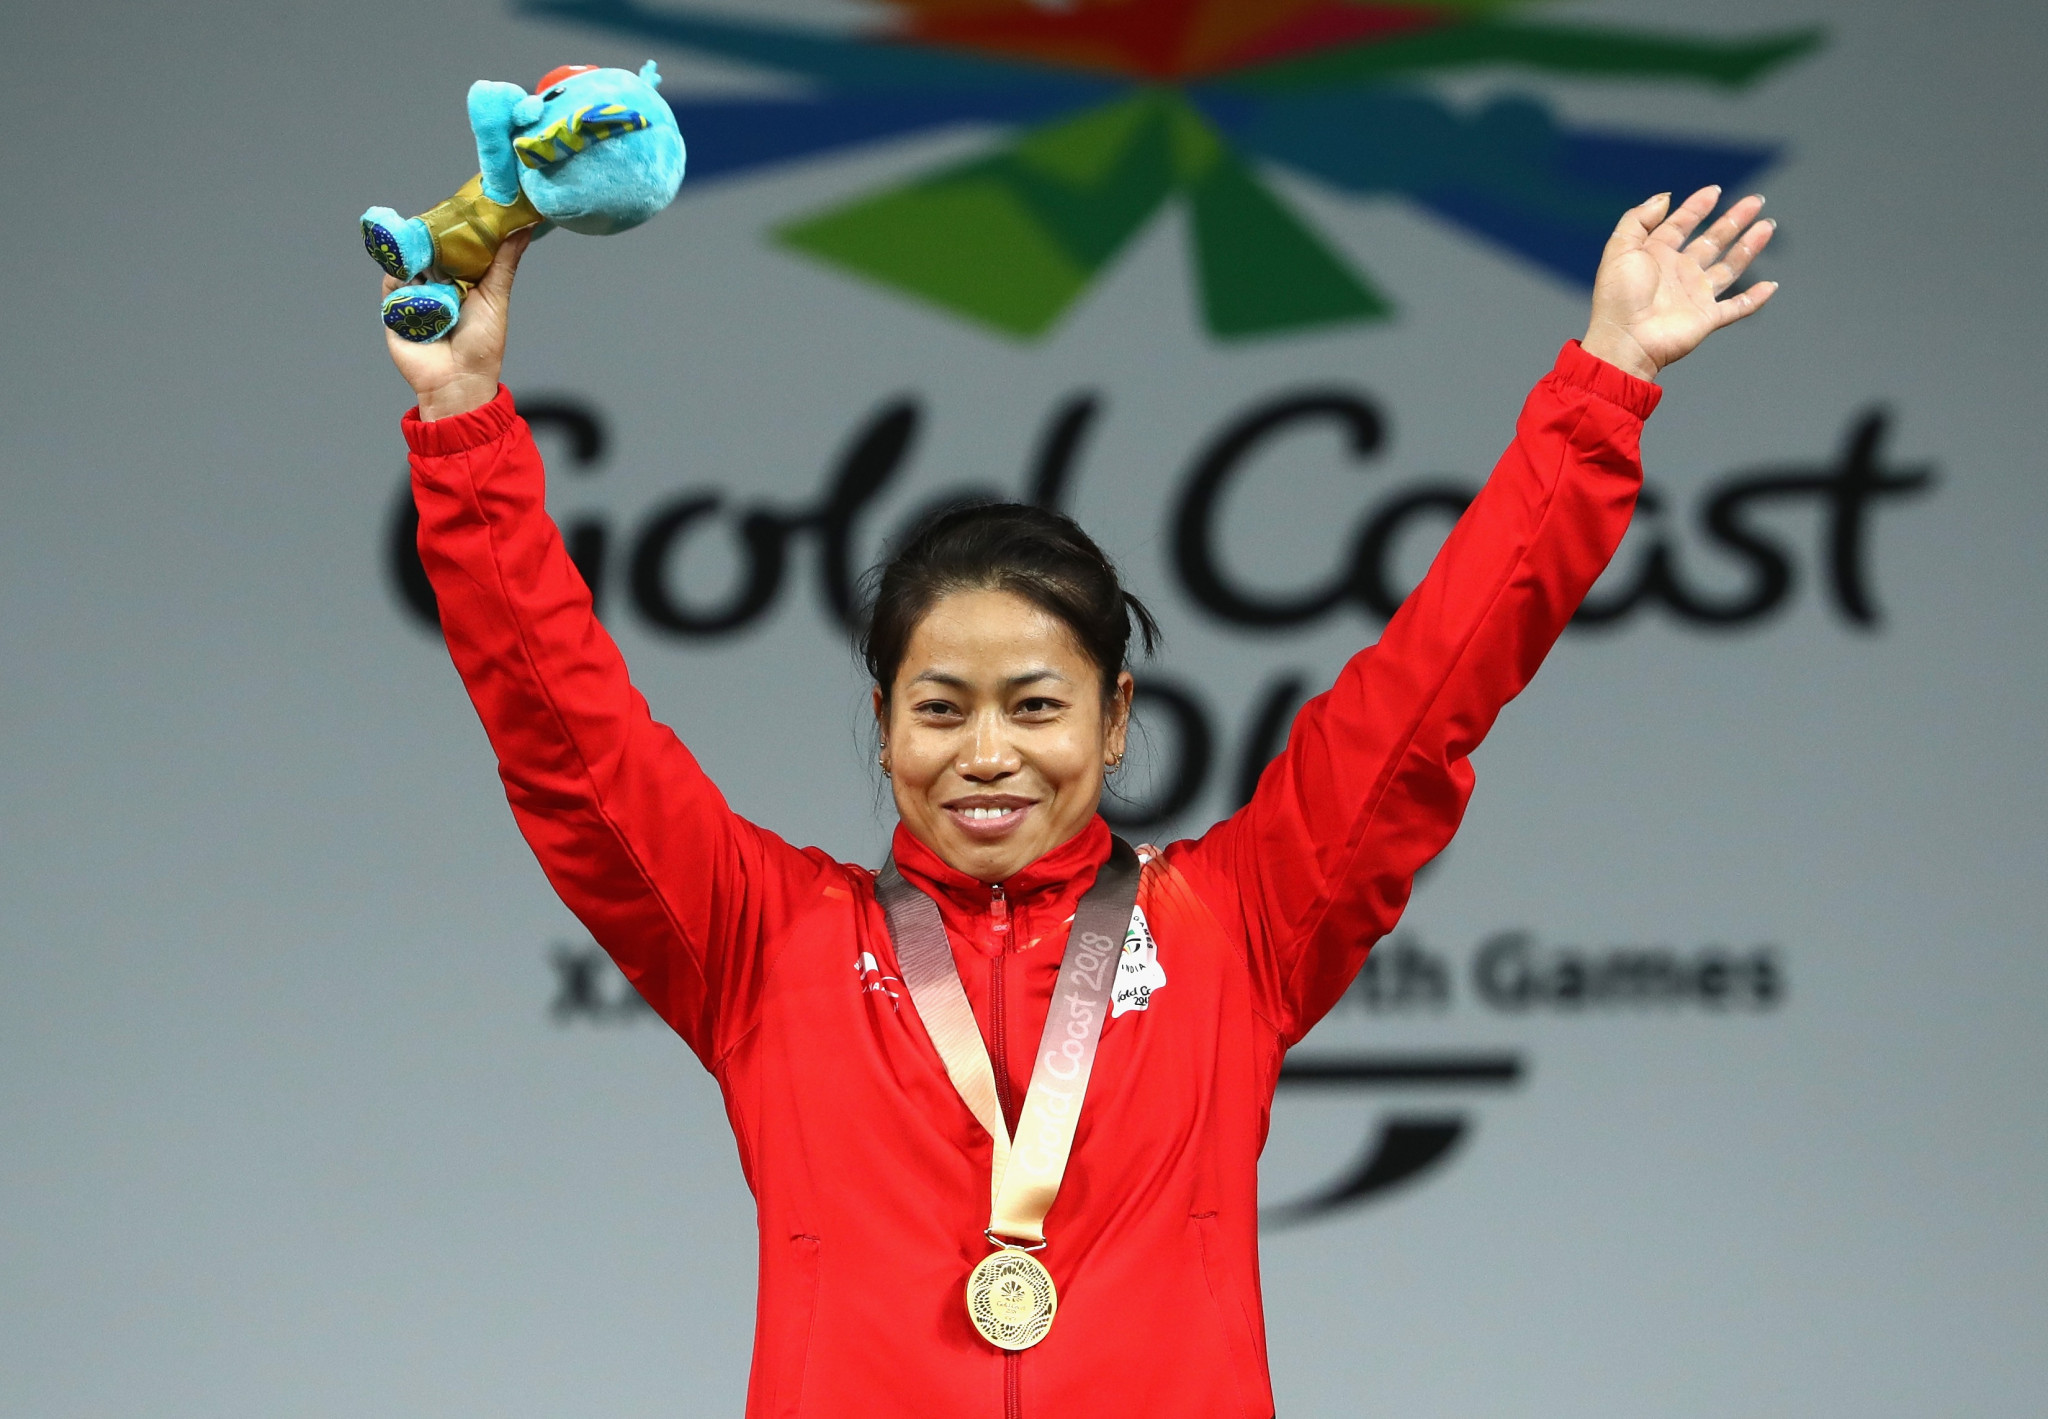 Sanjita Chanu Khumukcham claimed India's second weightlifting gold medal of Gold Coast 2018 after winning the women's 53kg event today ©Getty Images